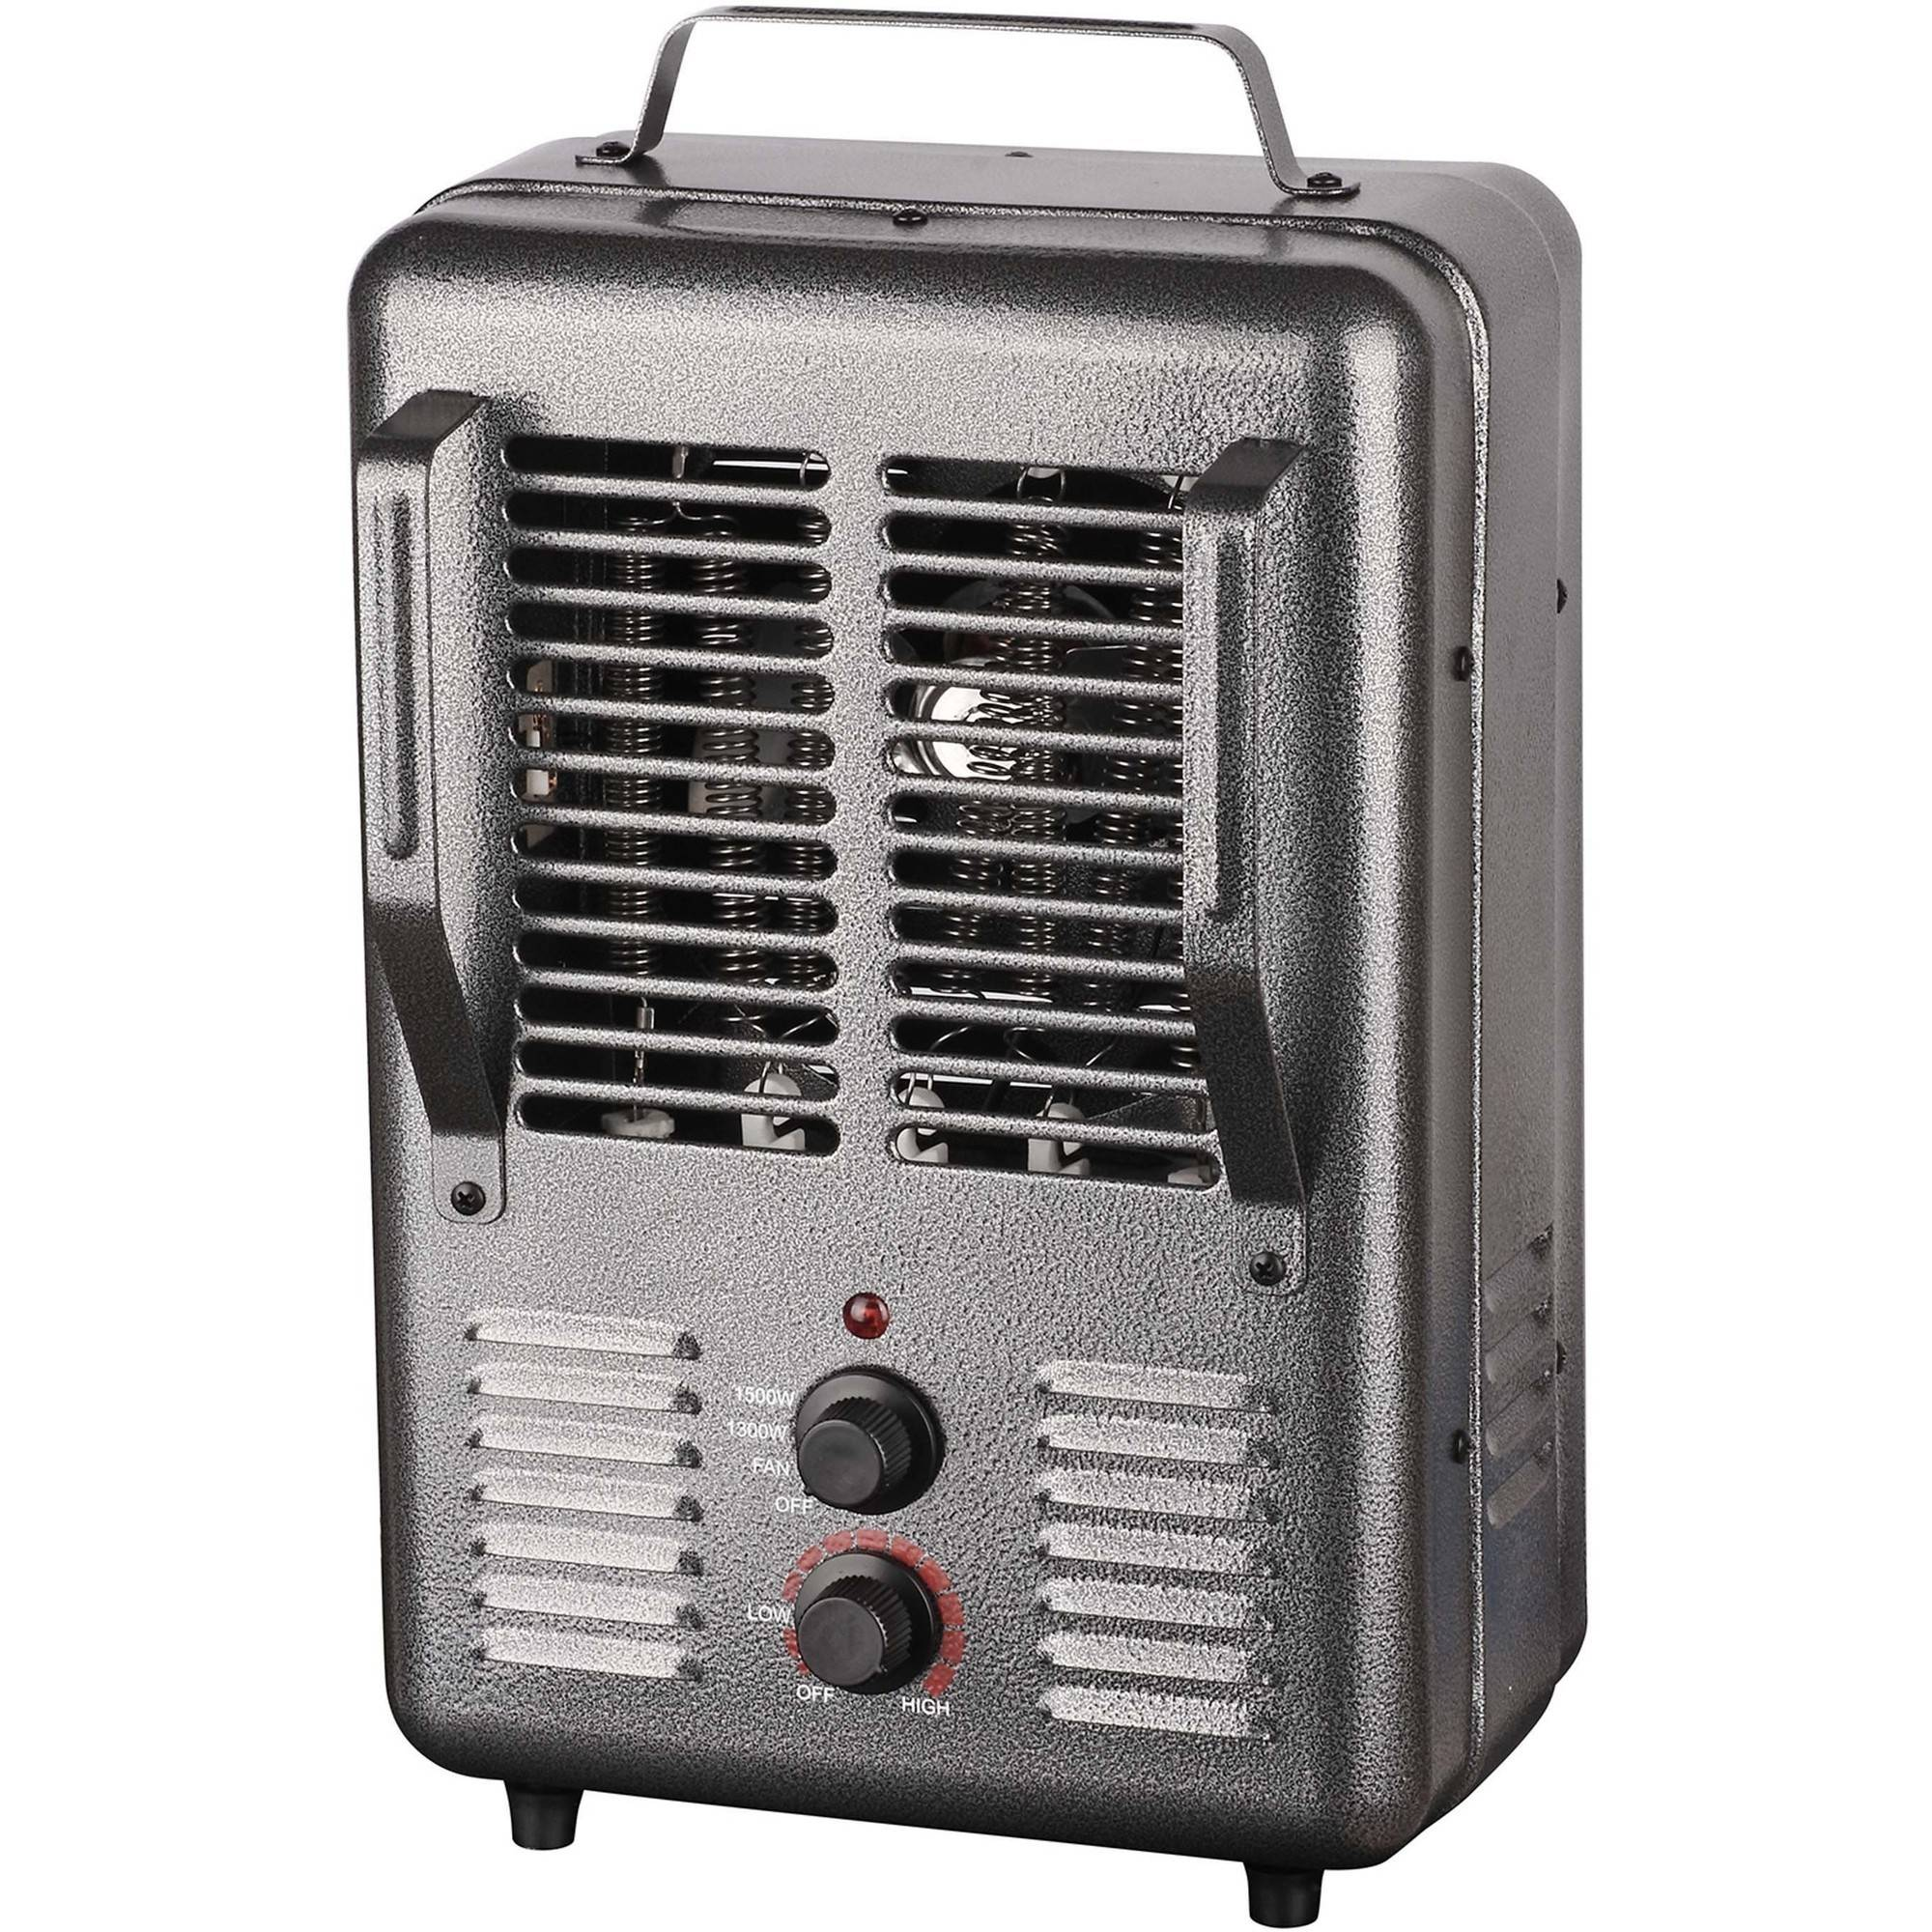 King PHM-1 120V Portable Electric Milk House Heater, Grey